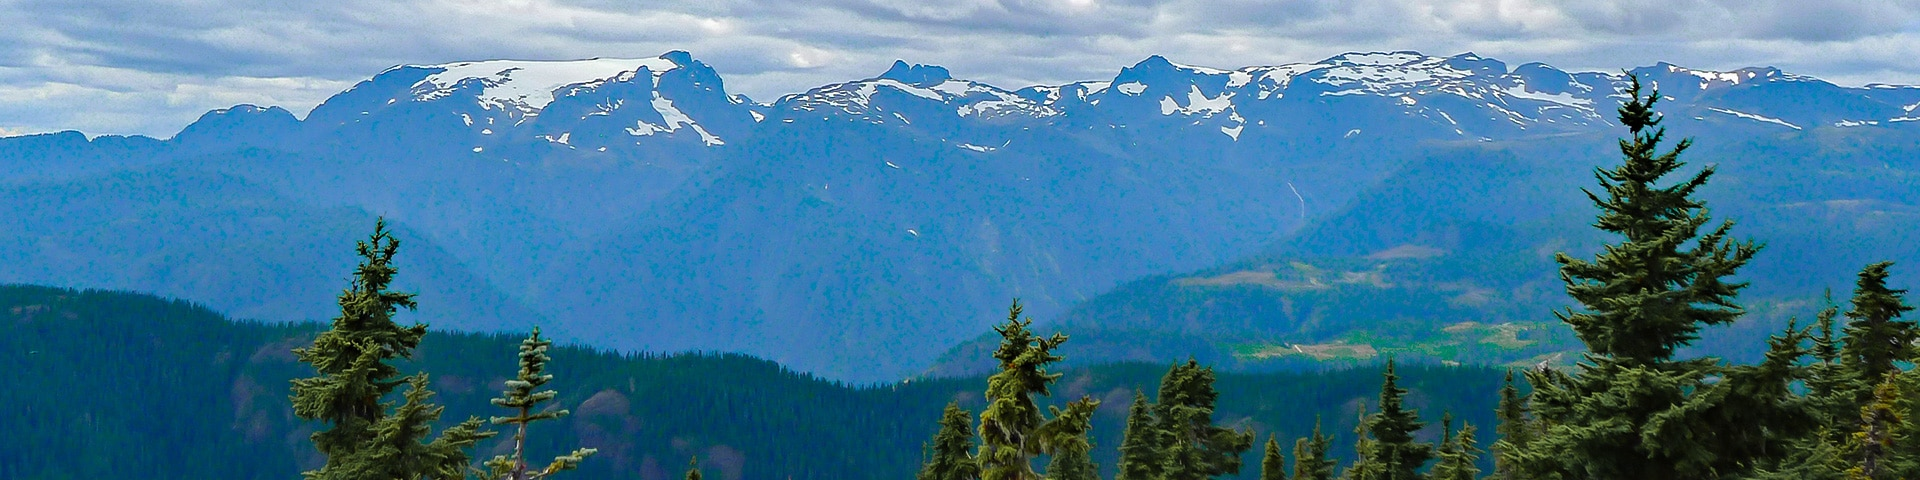 Panoramic views from the Mt Becher hike in Strathcona Provincial Park, Vancouver Island